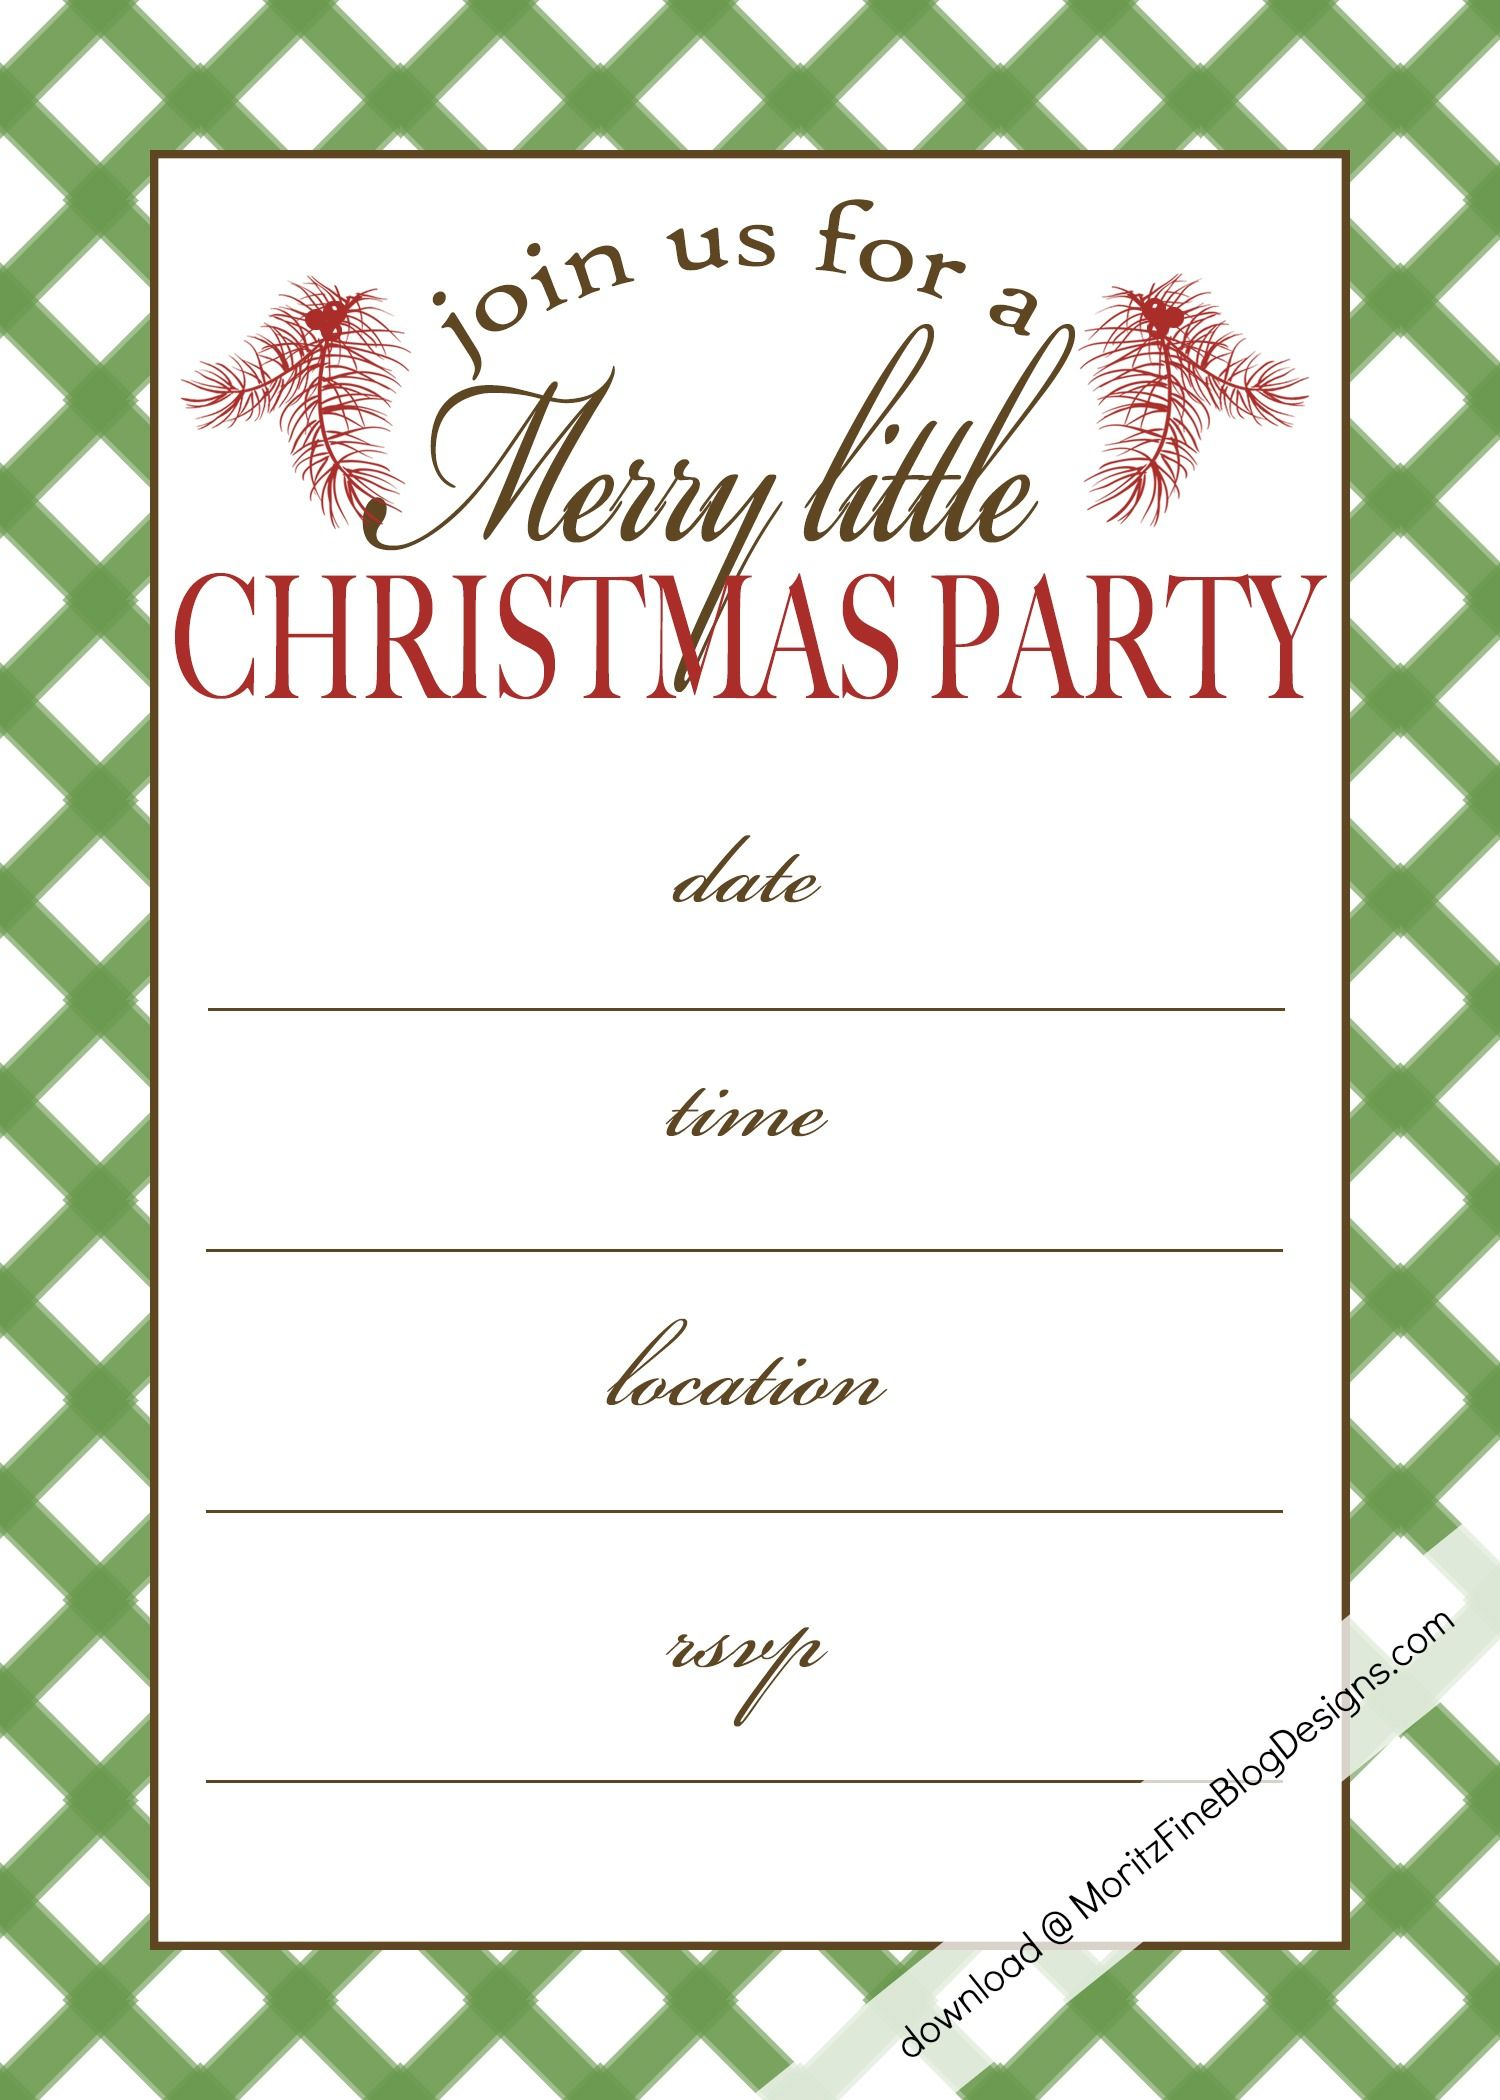 Insane image with regard to free printable christmas party invitations